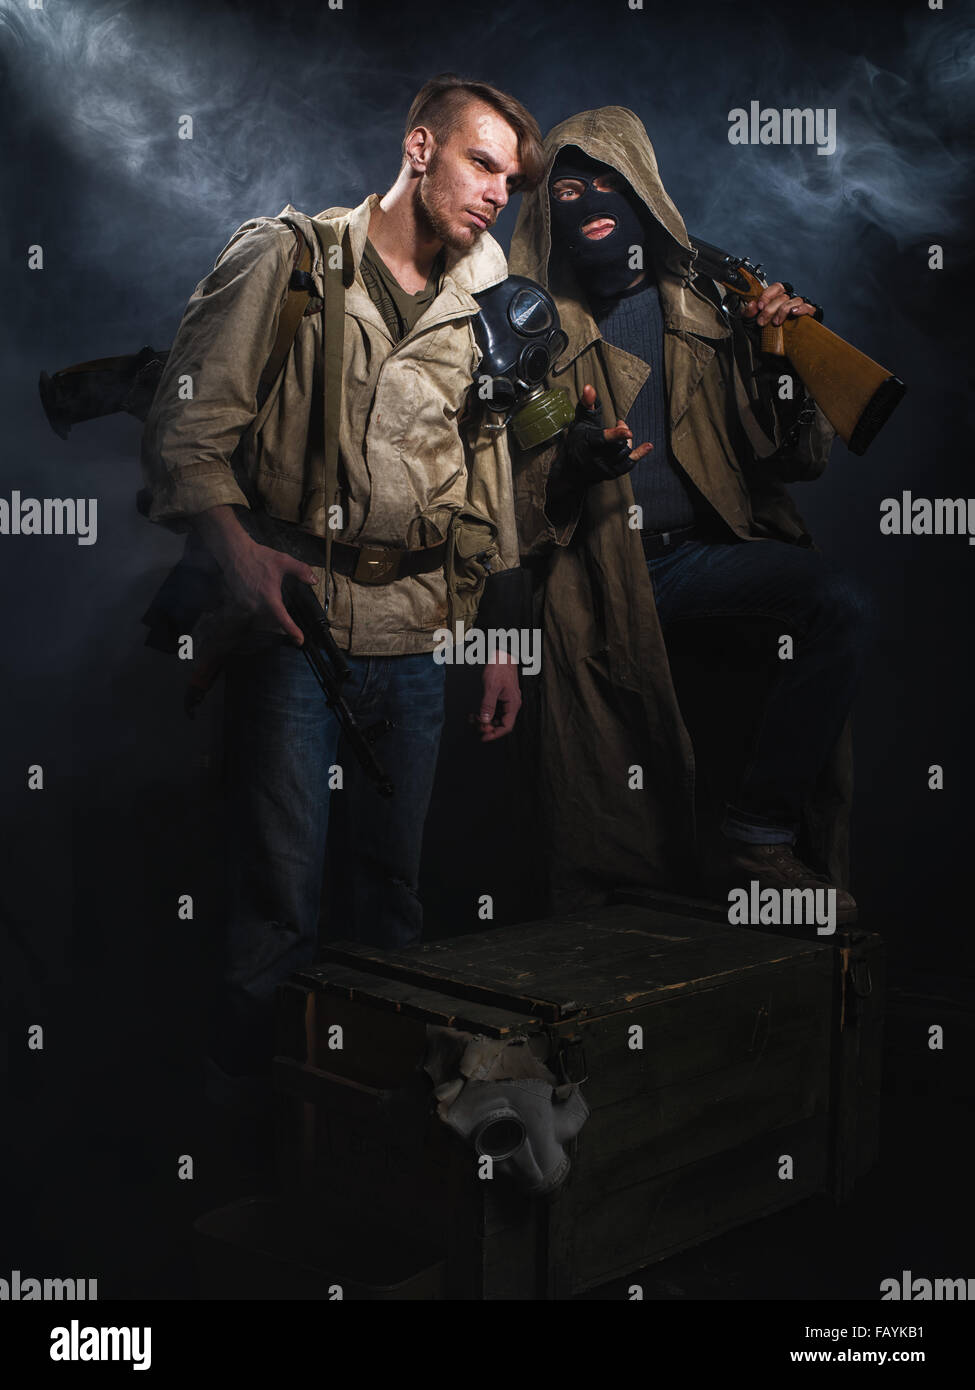 Two armed men. Post-apocalyptic fiction. Stalker. - Stock Image